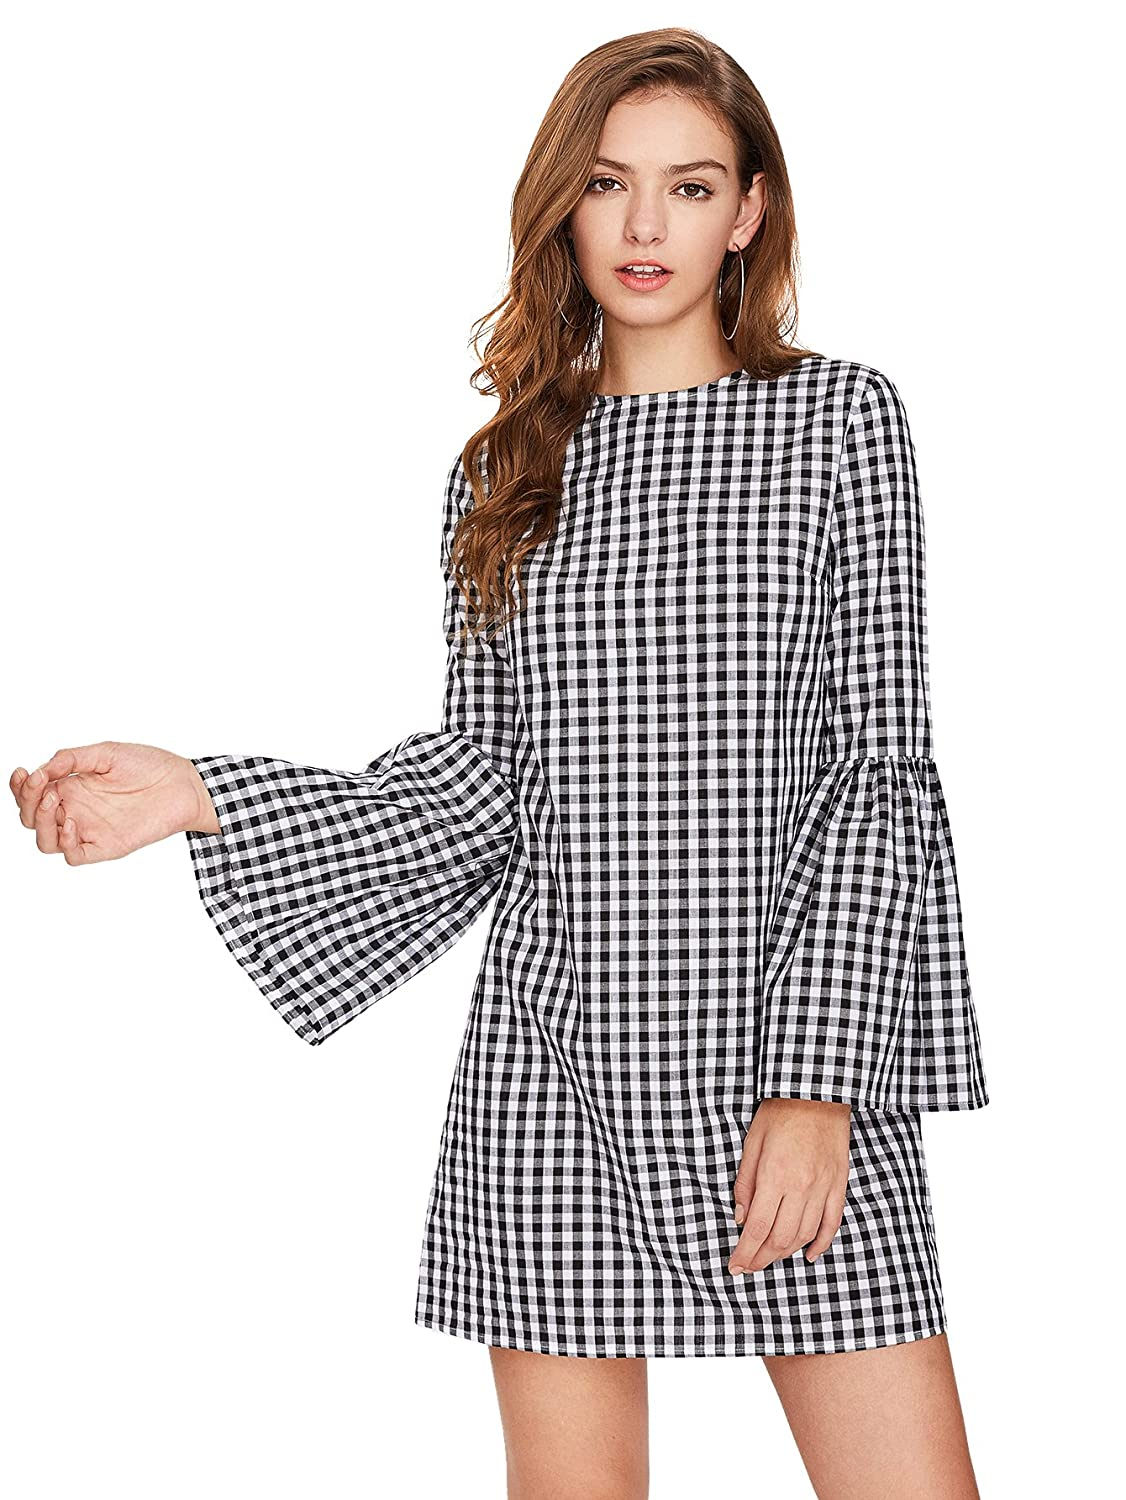 2fa1c19b63ca Floerns Women's Bell Long Sleeve Shift Gingham Dress at Amazon Women's  Clothing store: